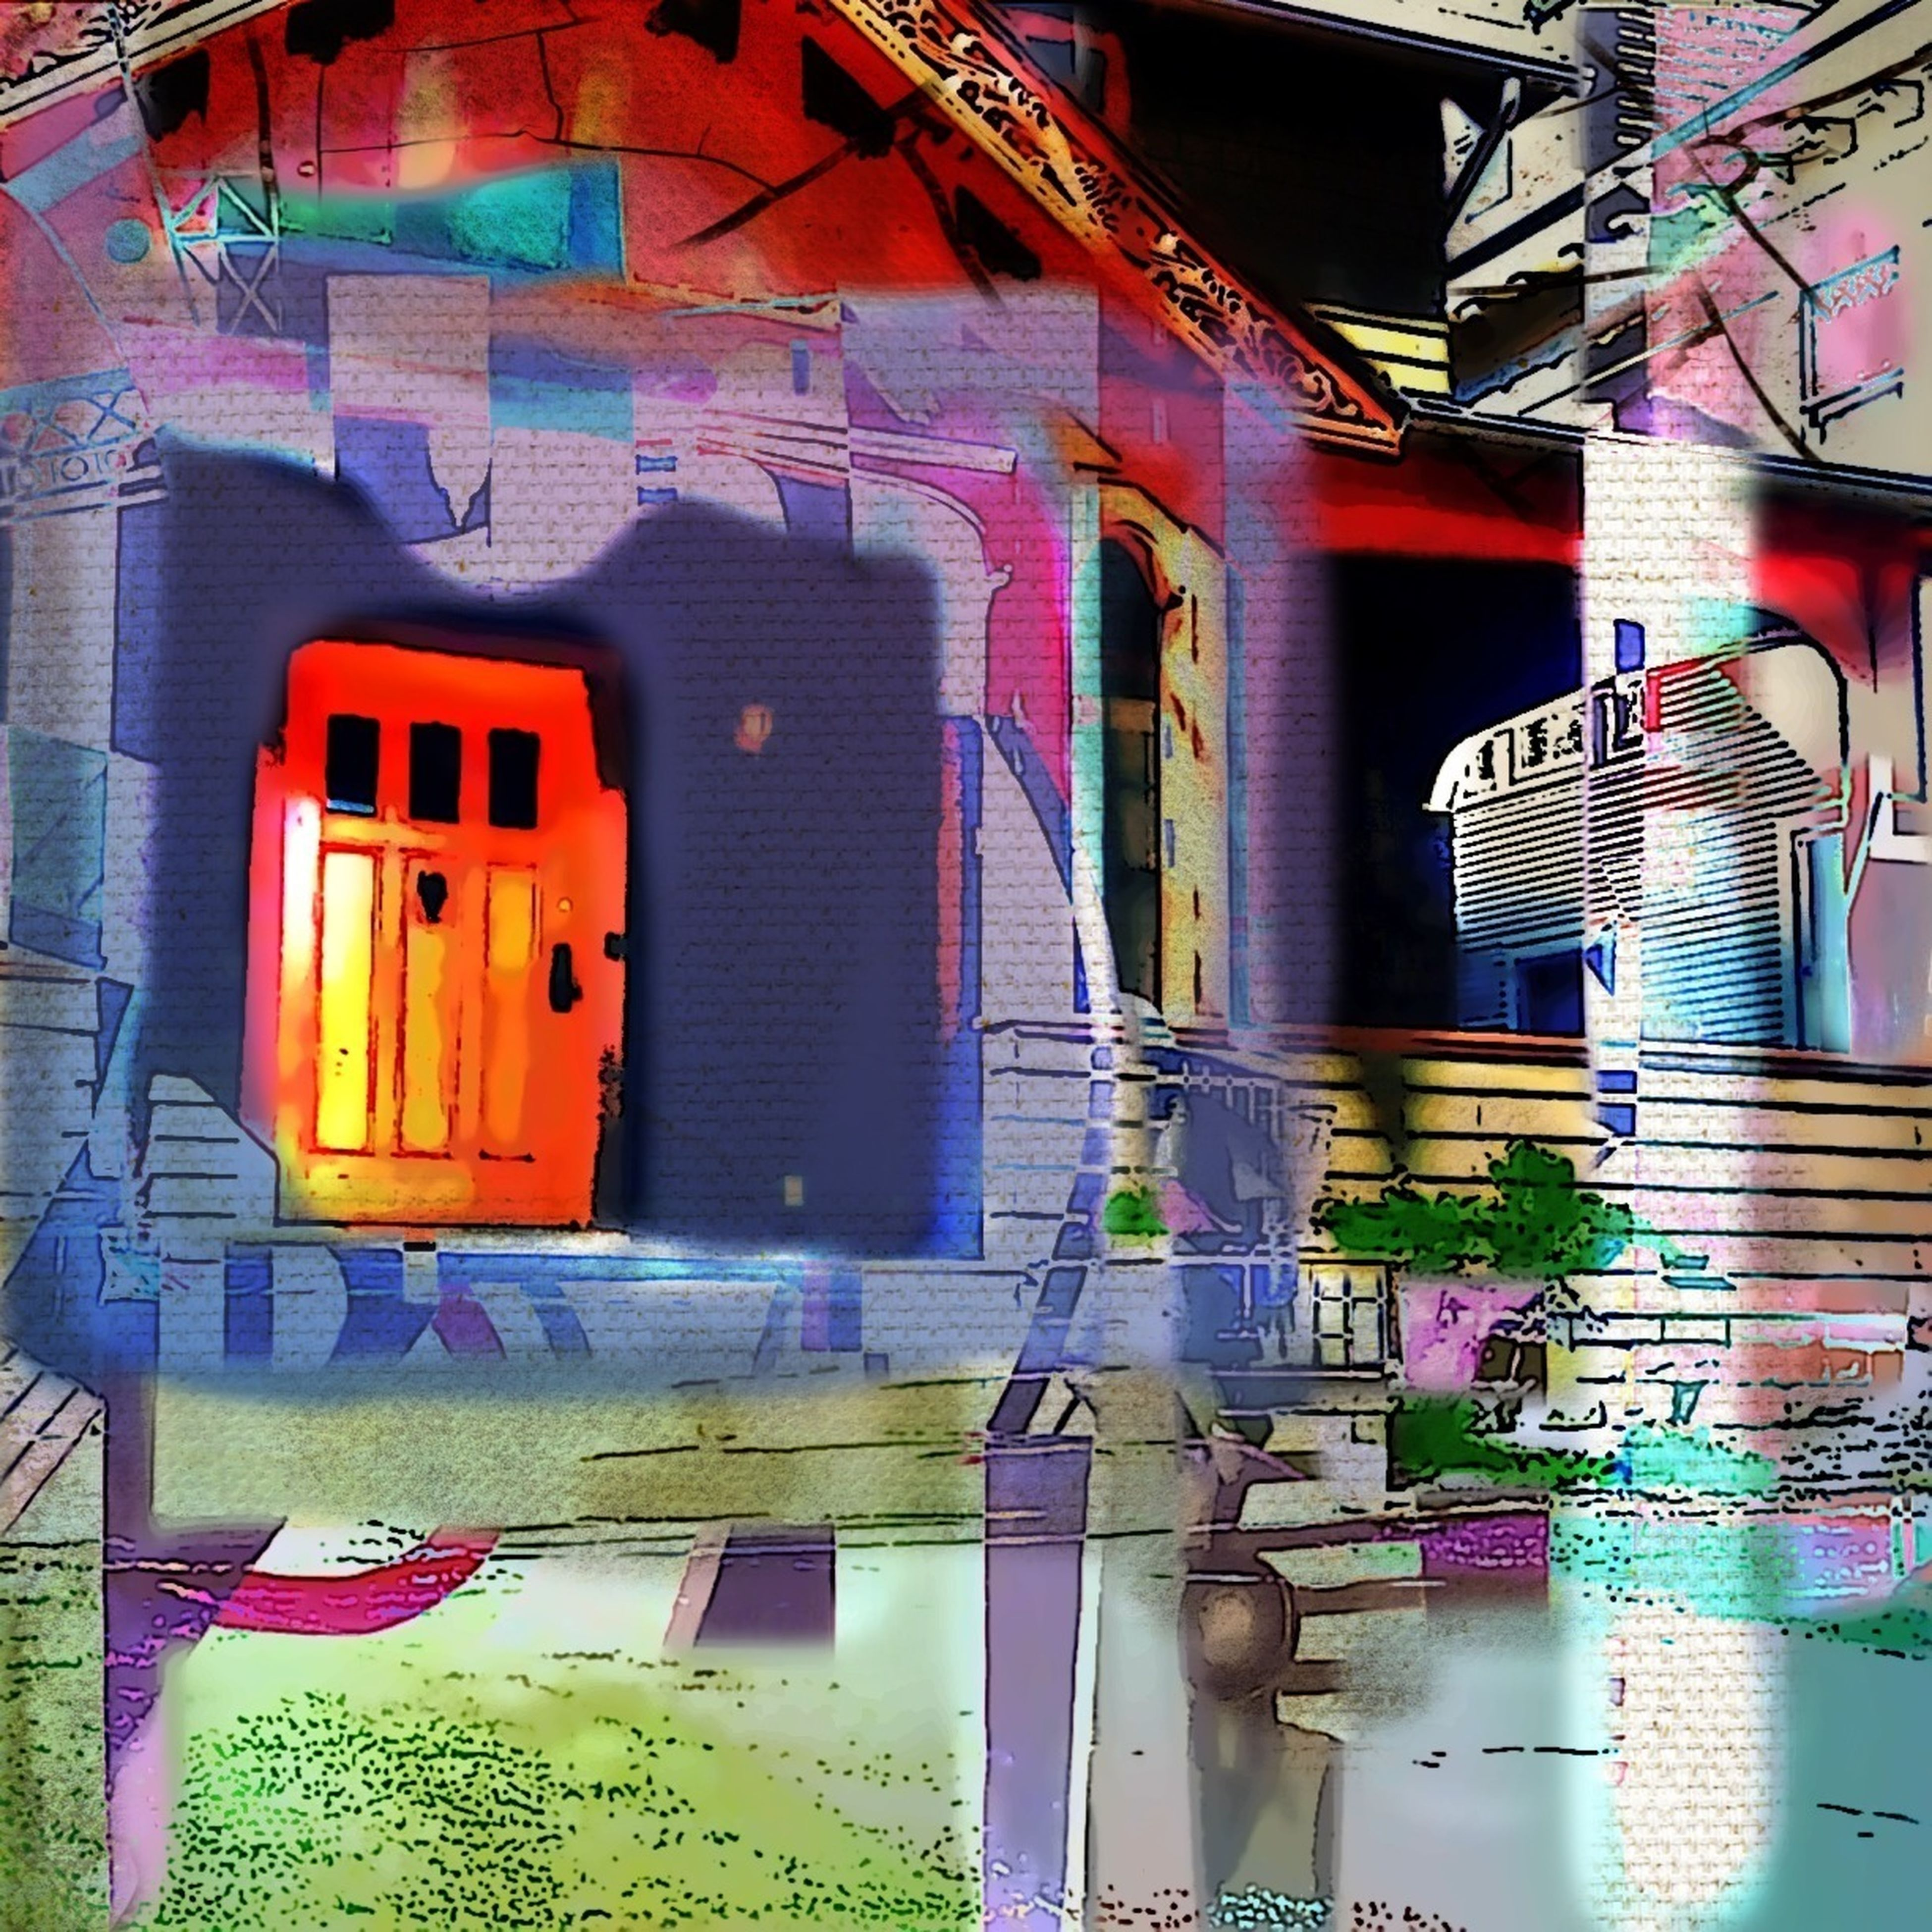 Houses And Windows Abstractions In Colors Digital Painting/Photo Collage Combo